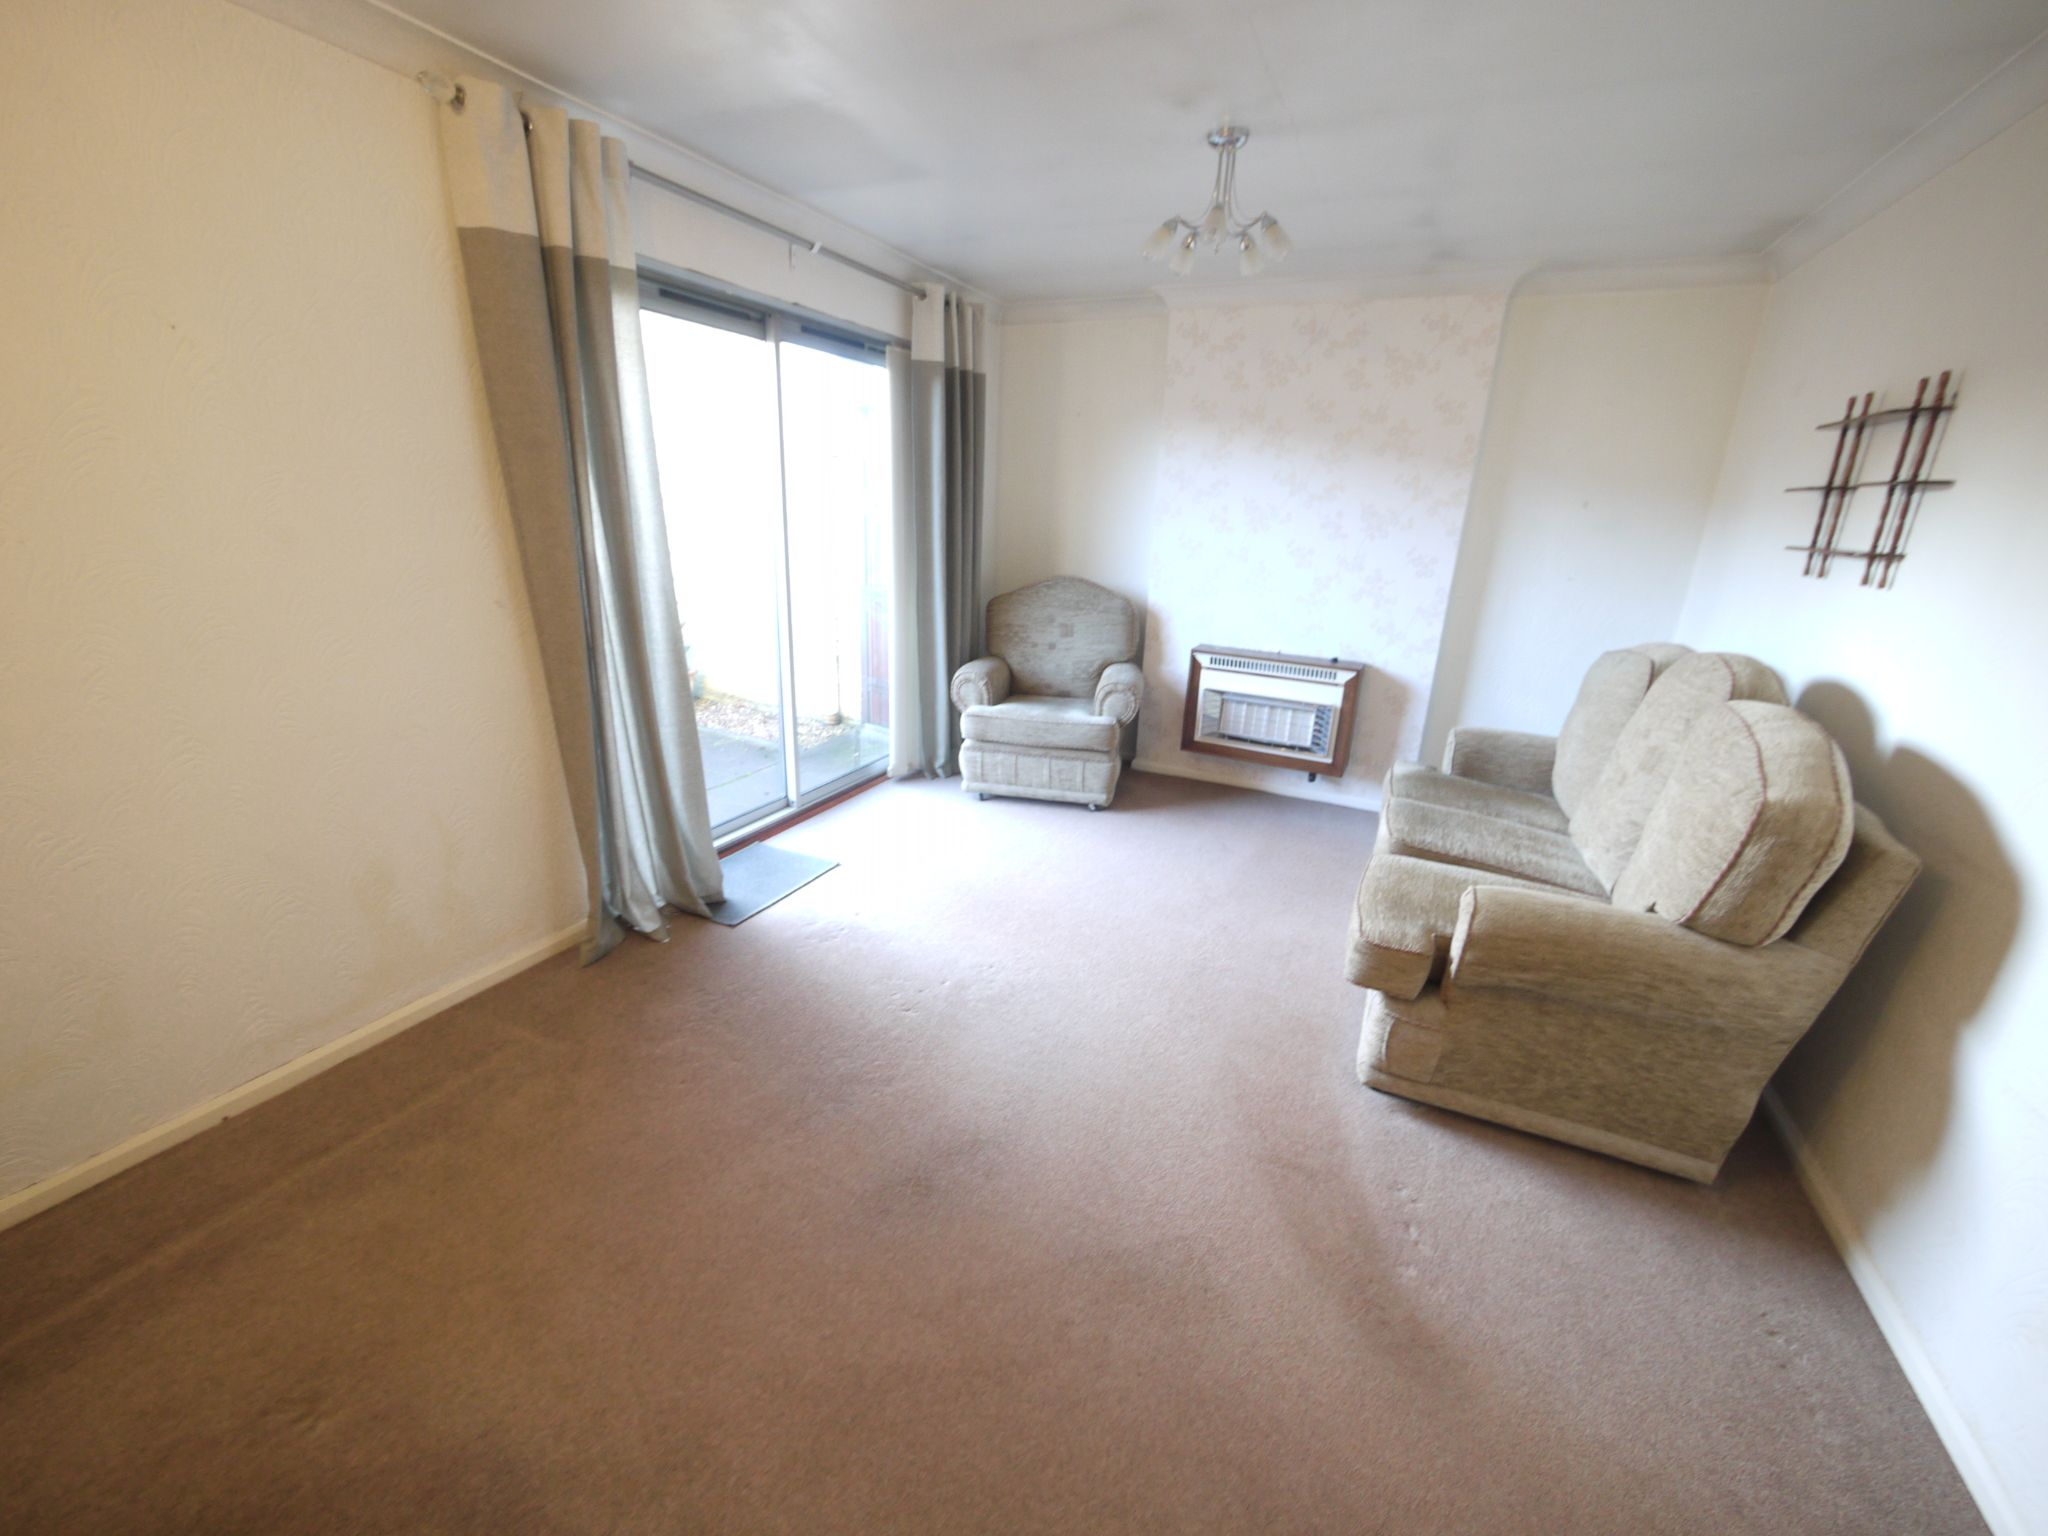 2 bedroom detached bungalow SSTC in Brighouse - Lounge.